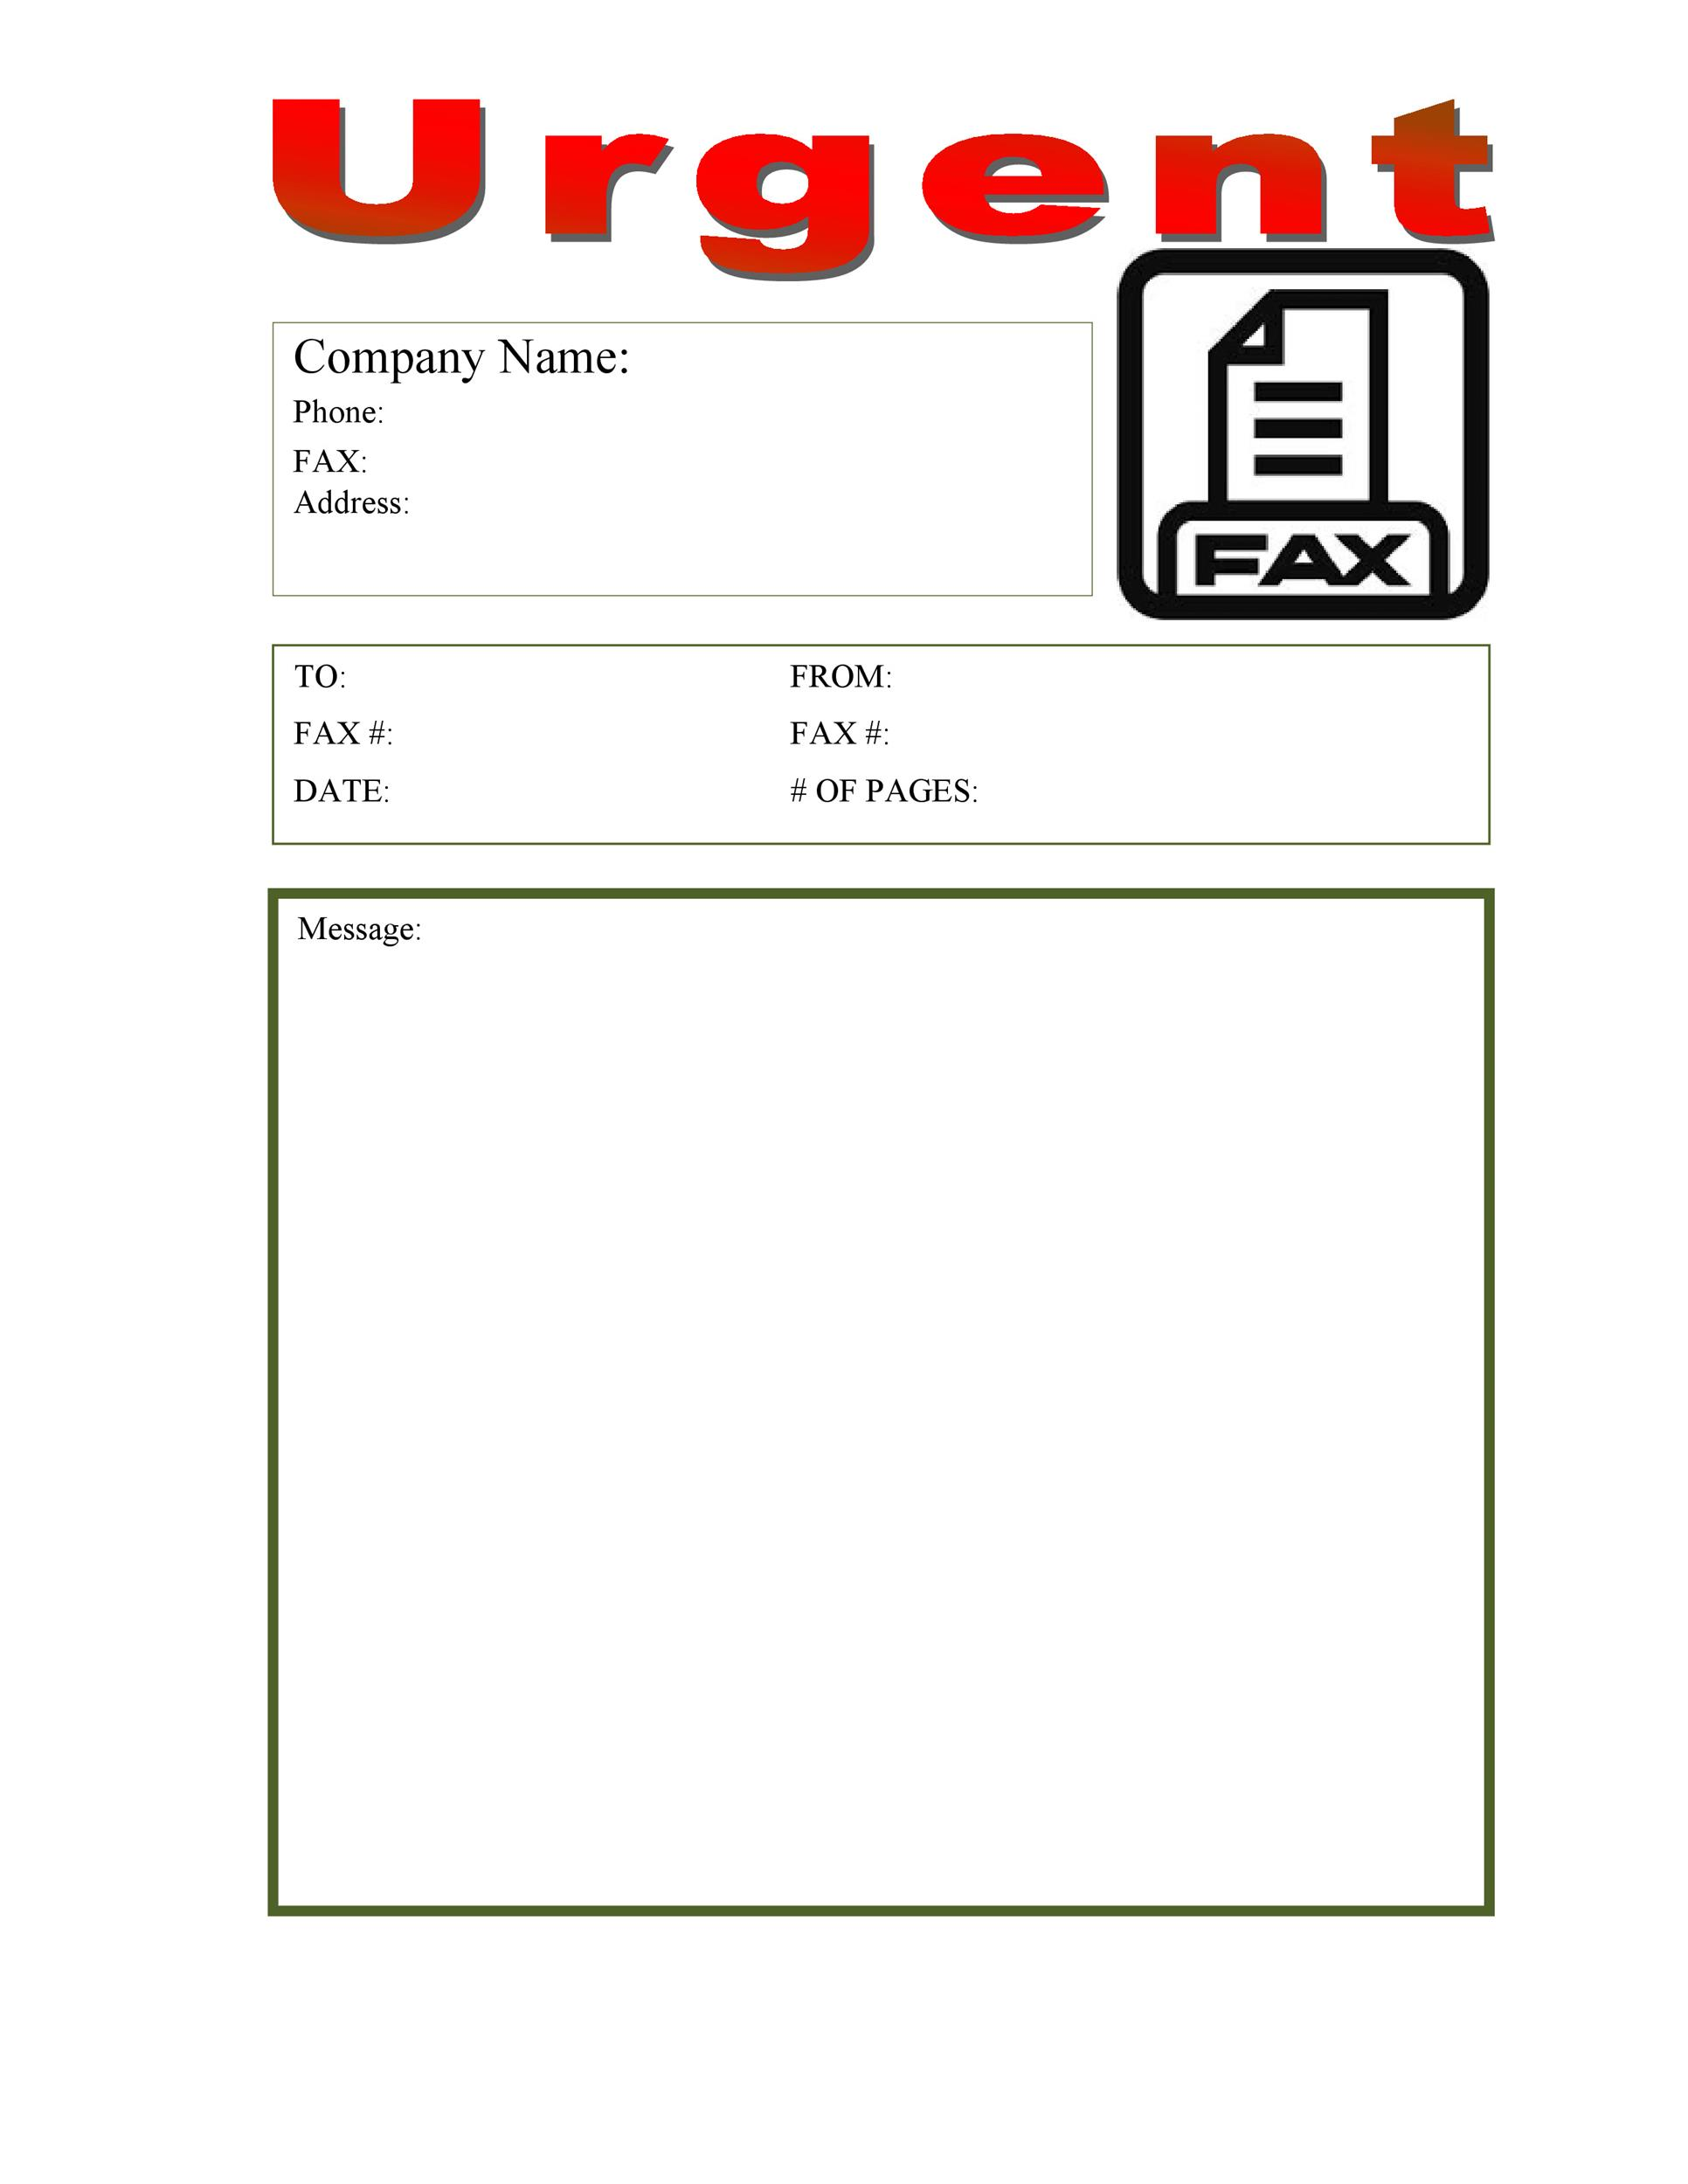 Urgent Fax Cover Sheet. Resume Invoice Forms Online Free Fax Cover